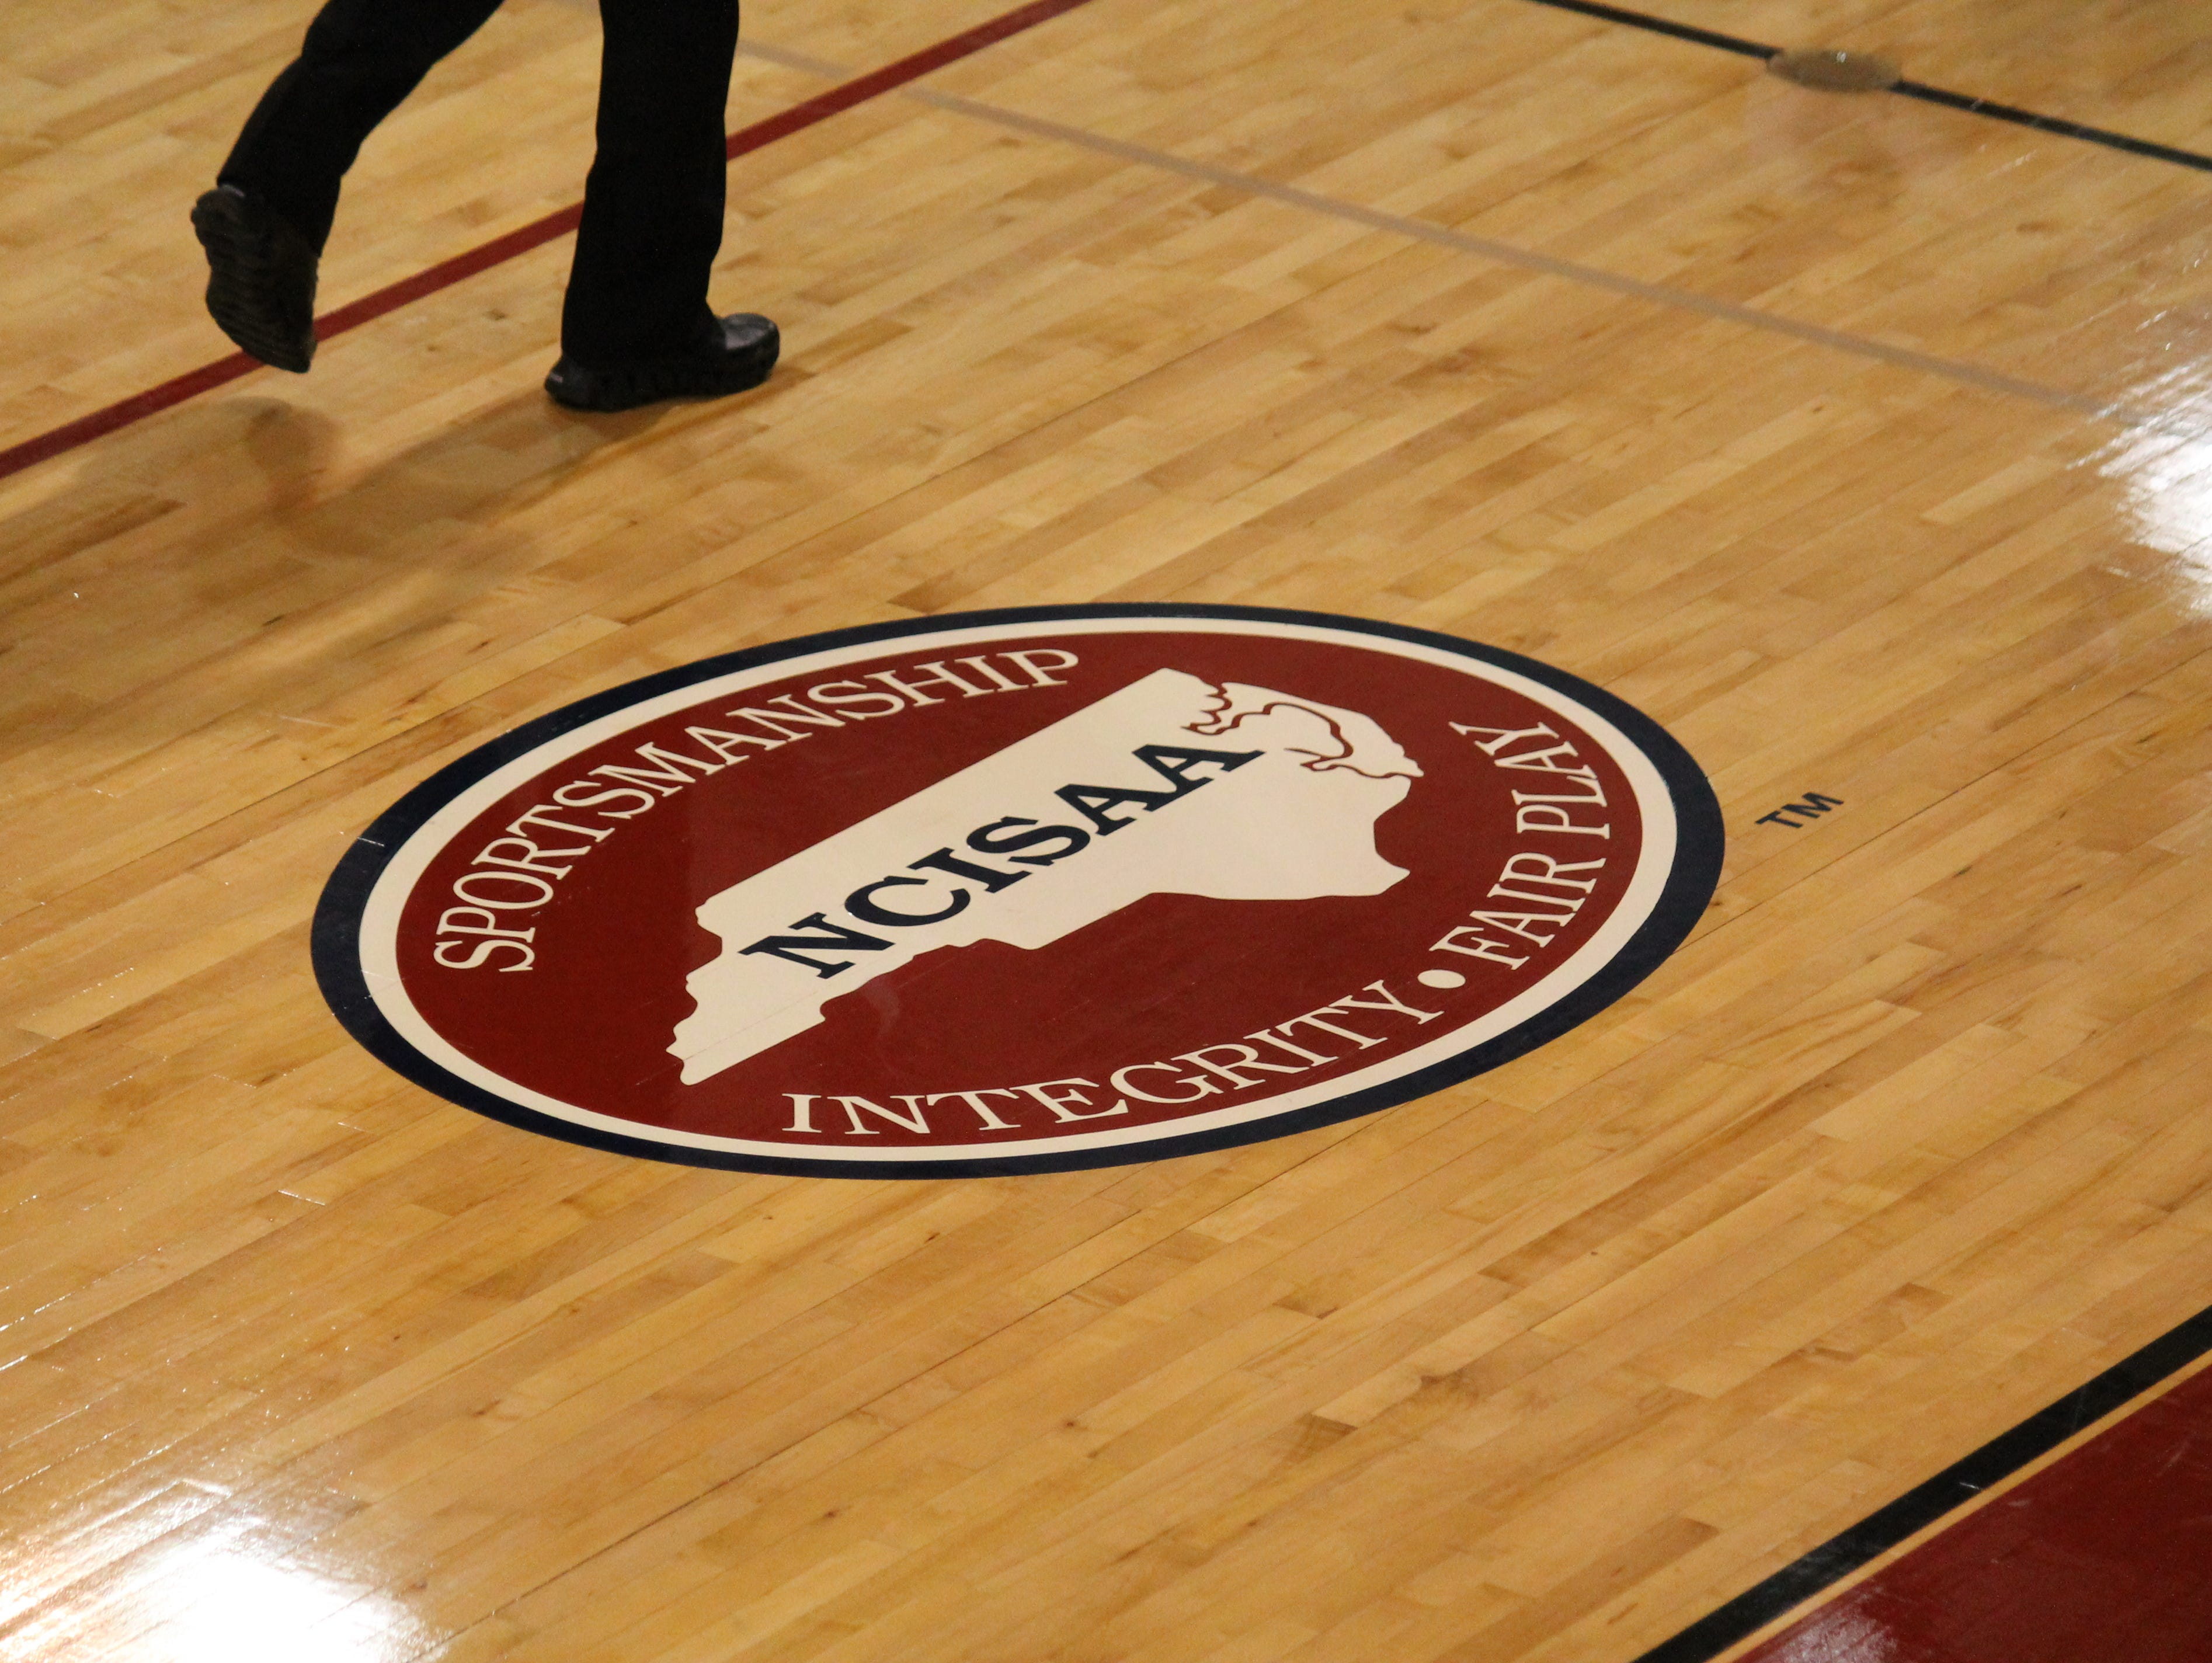 The NCISAA basketball tournament continues in Asheville Thursday through Saturday.